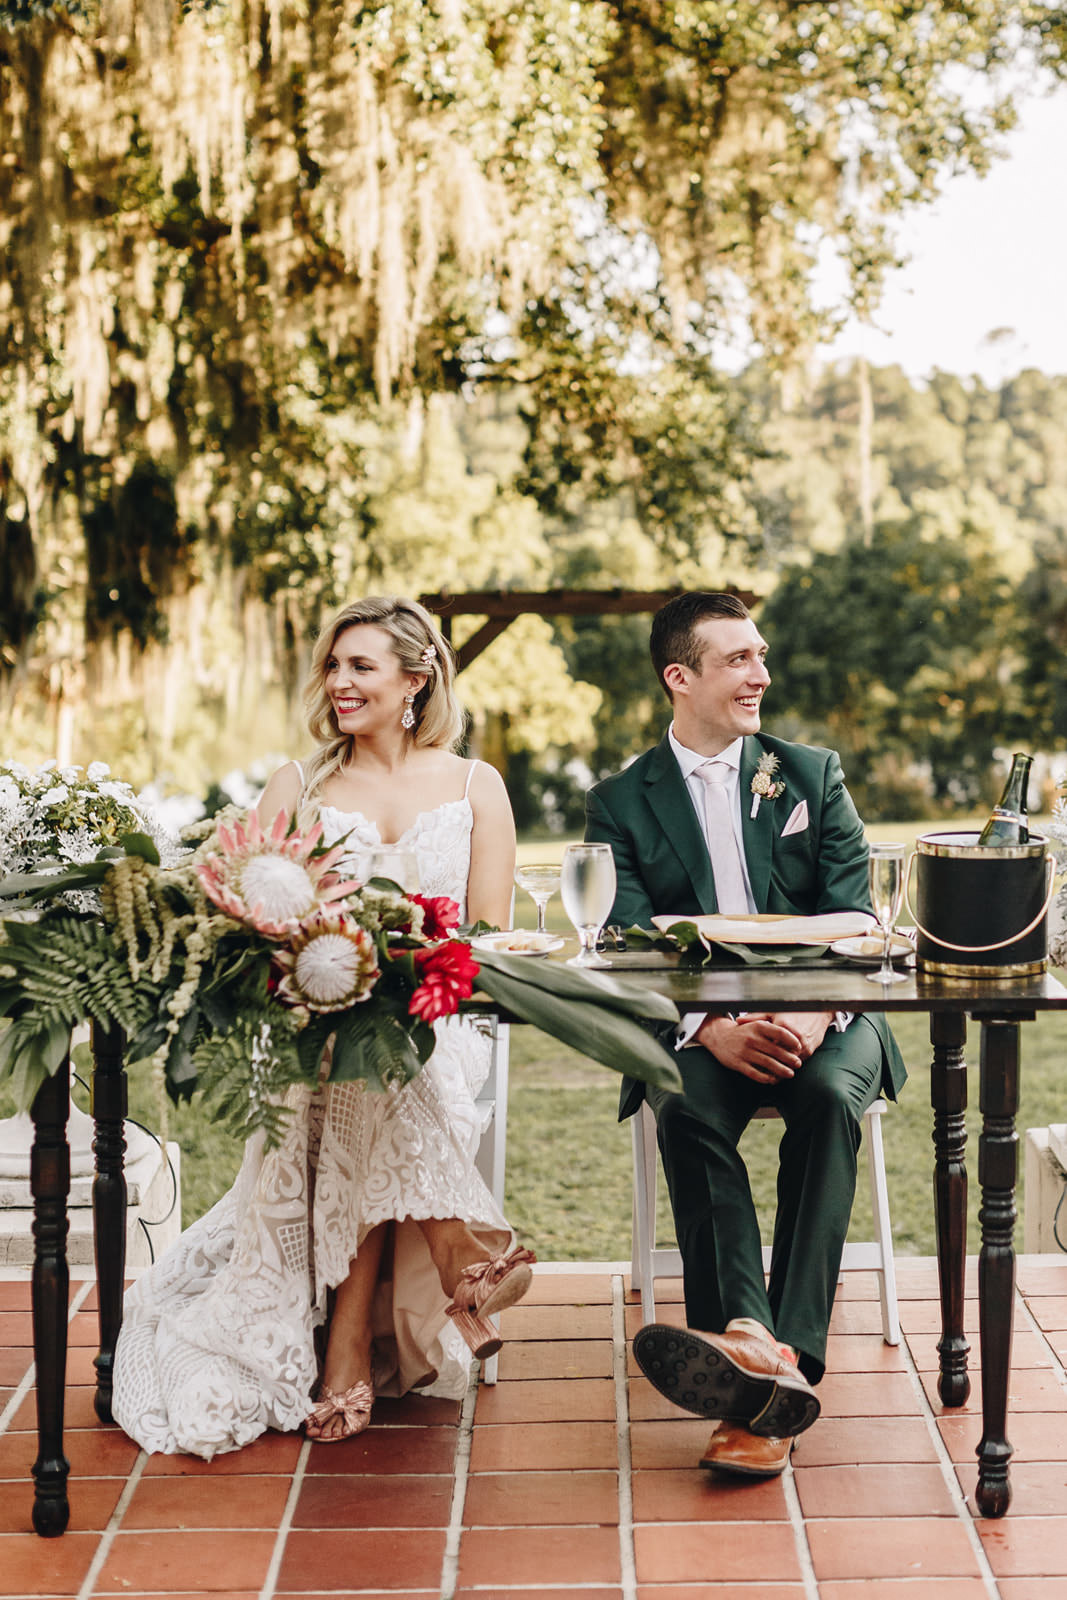 Bride and groom sitting at the sweetheart table looking at their guests.